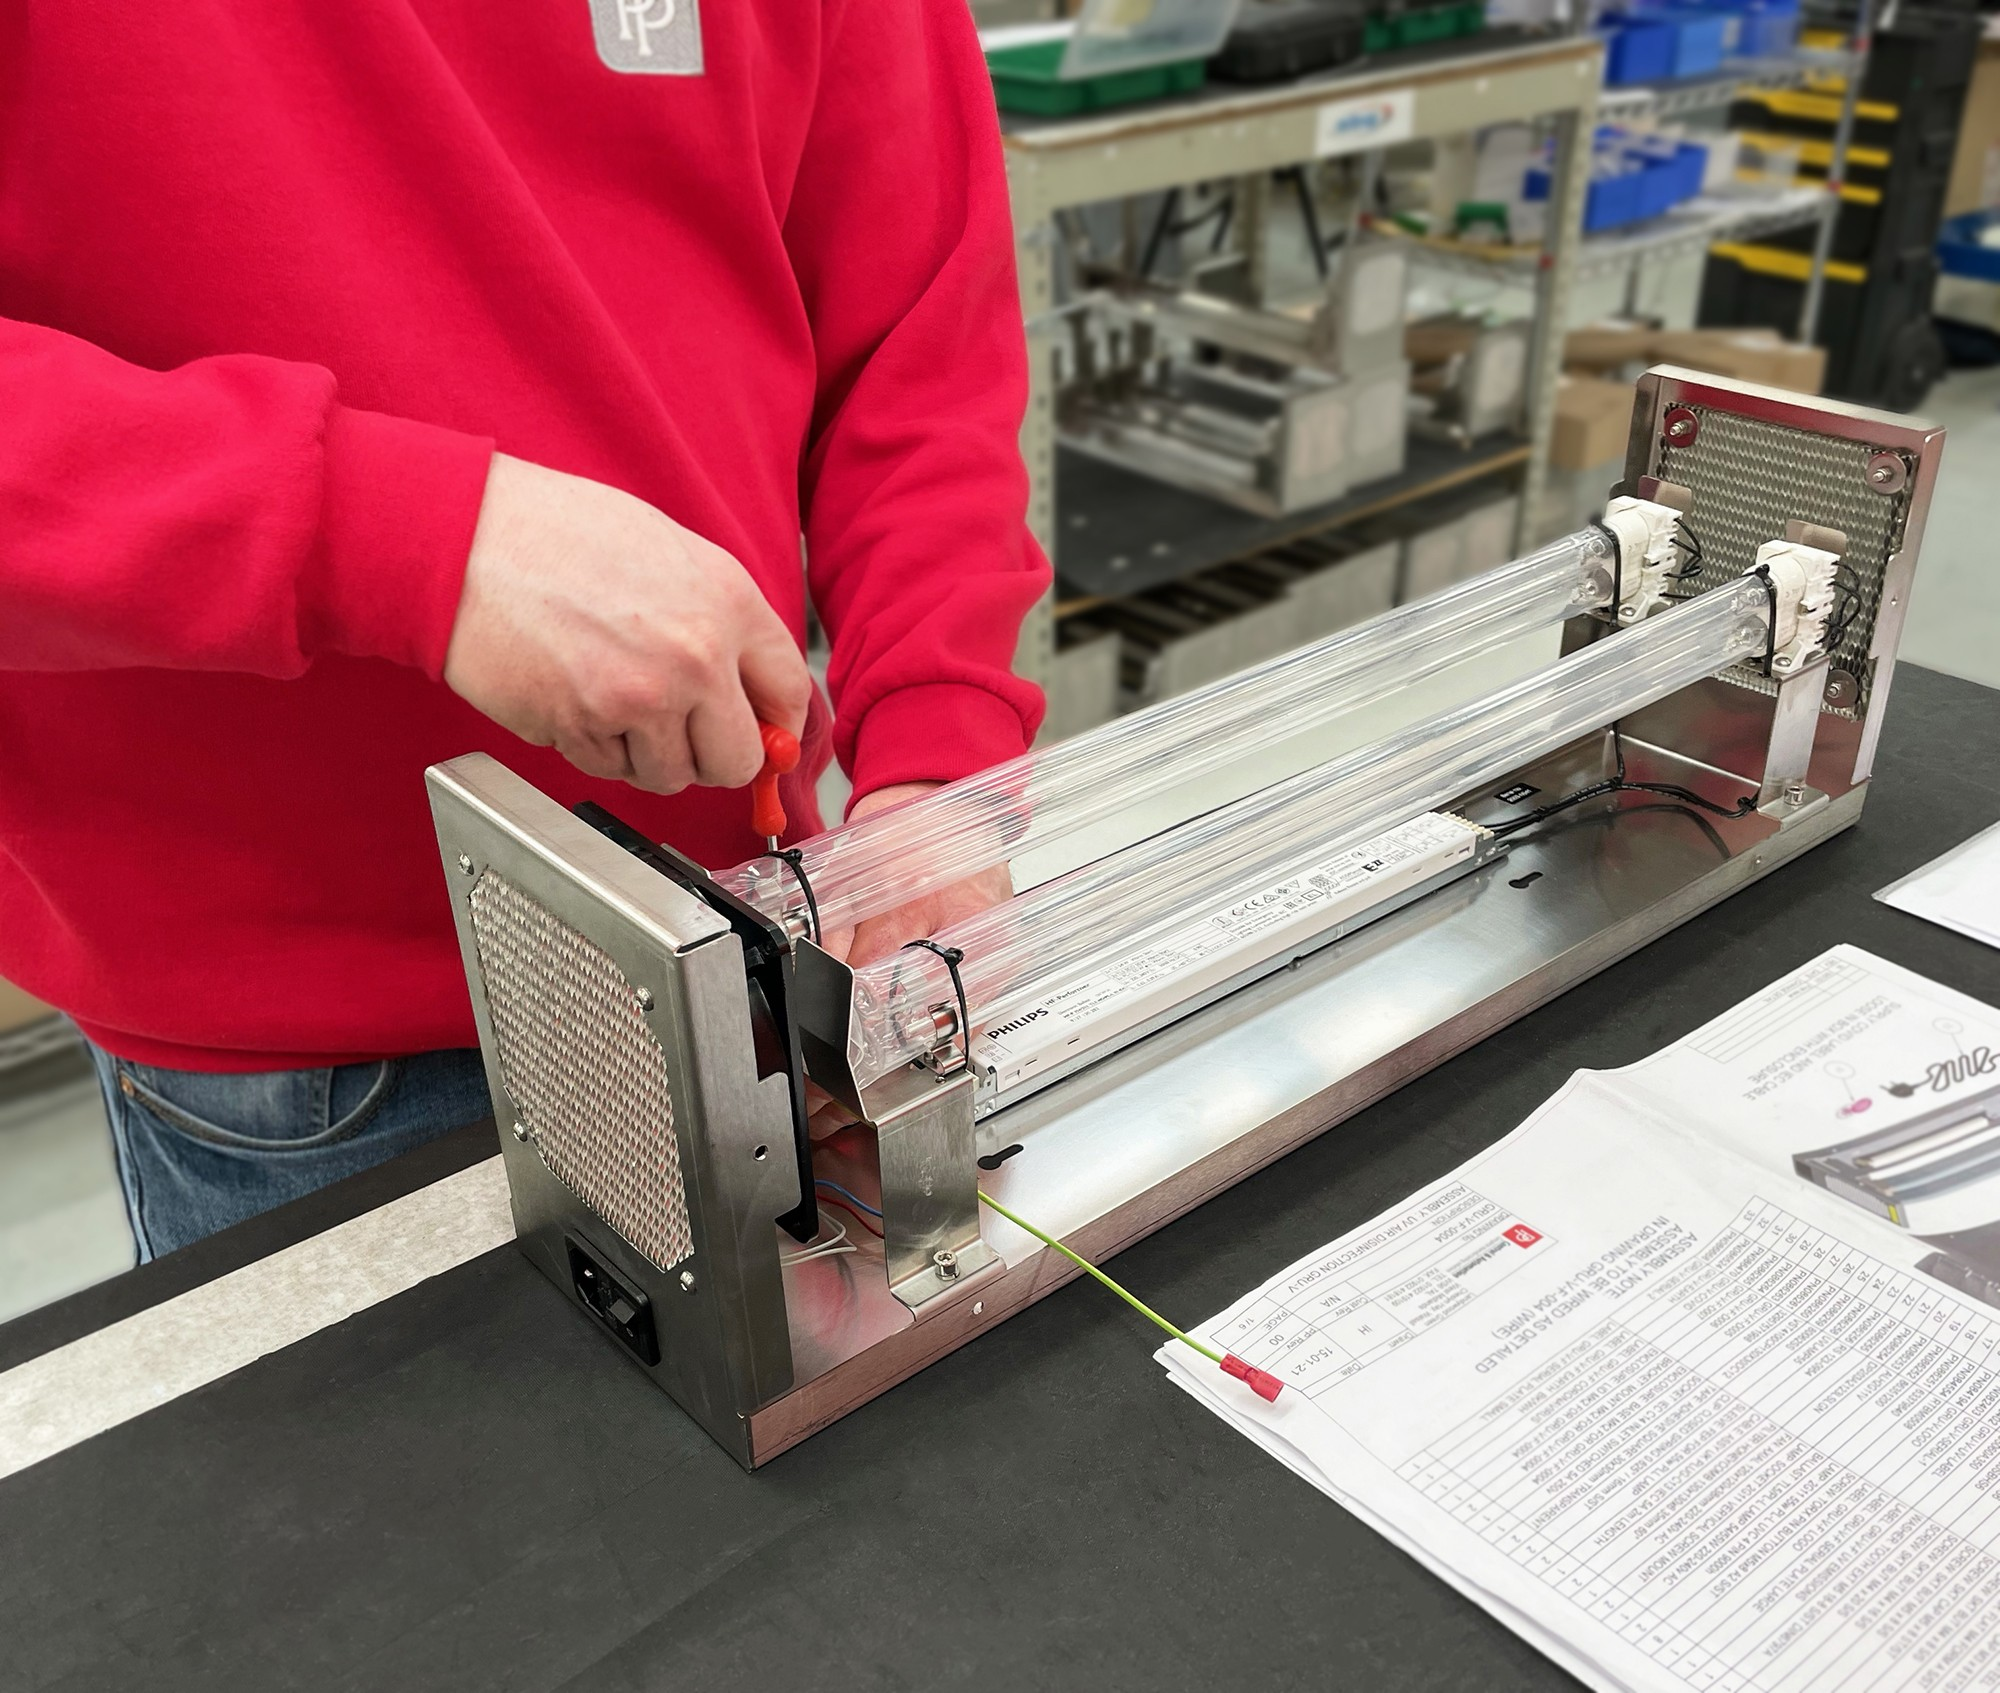 Manufacturing deal boosts Jenton's UV tech that protects against Covid-19 » image4 Edited » PP Control & Automation